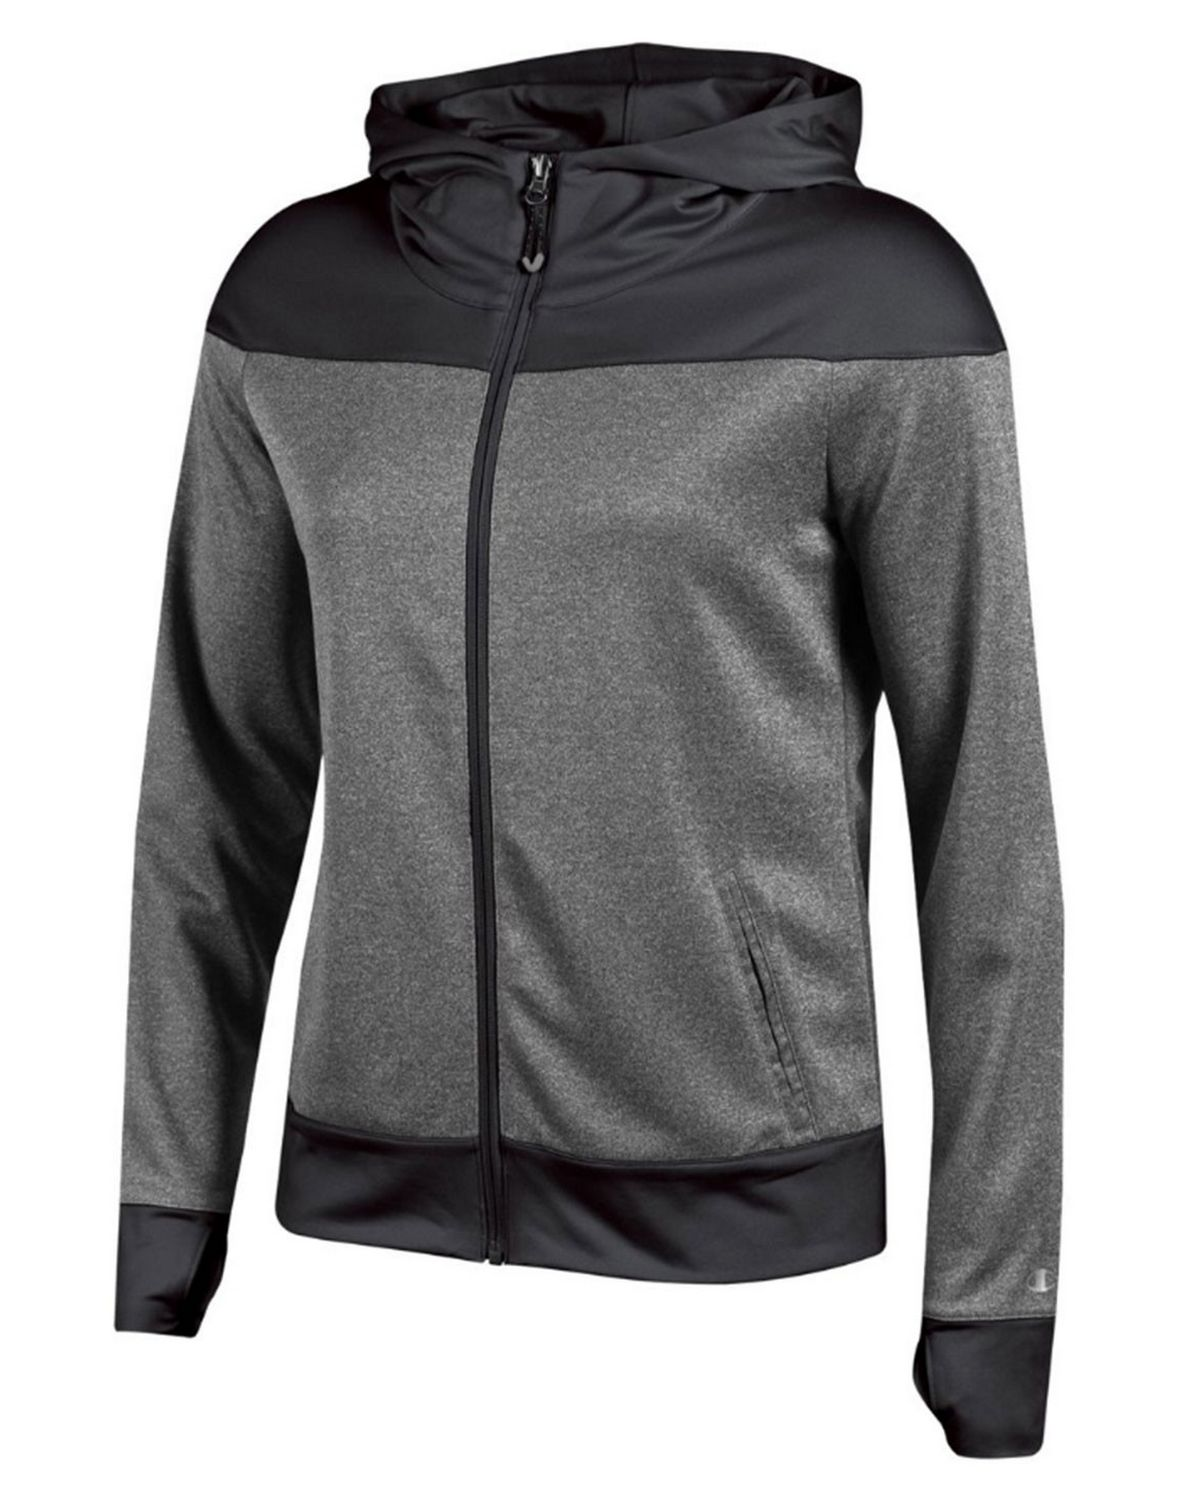 Champion G5081 Womens Full Zip Hoodie - Black - XS G5081